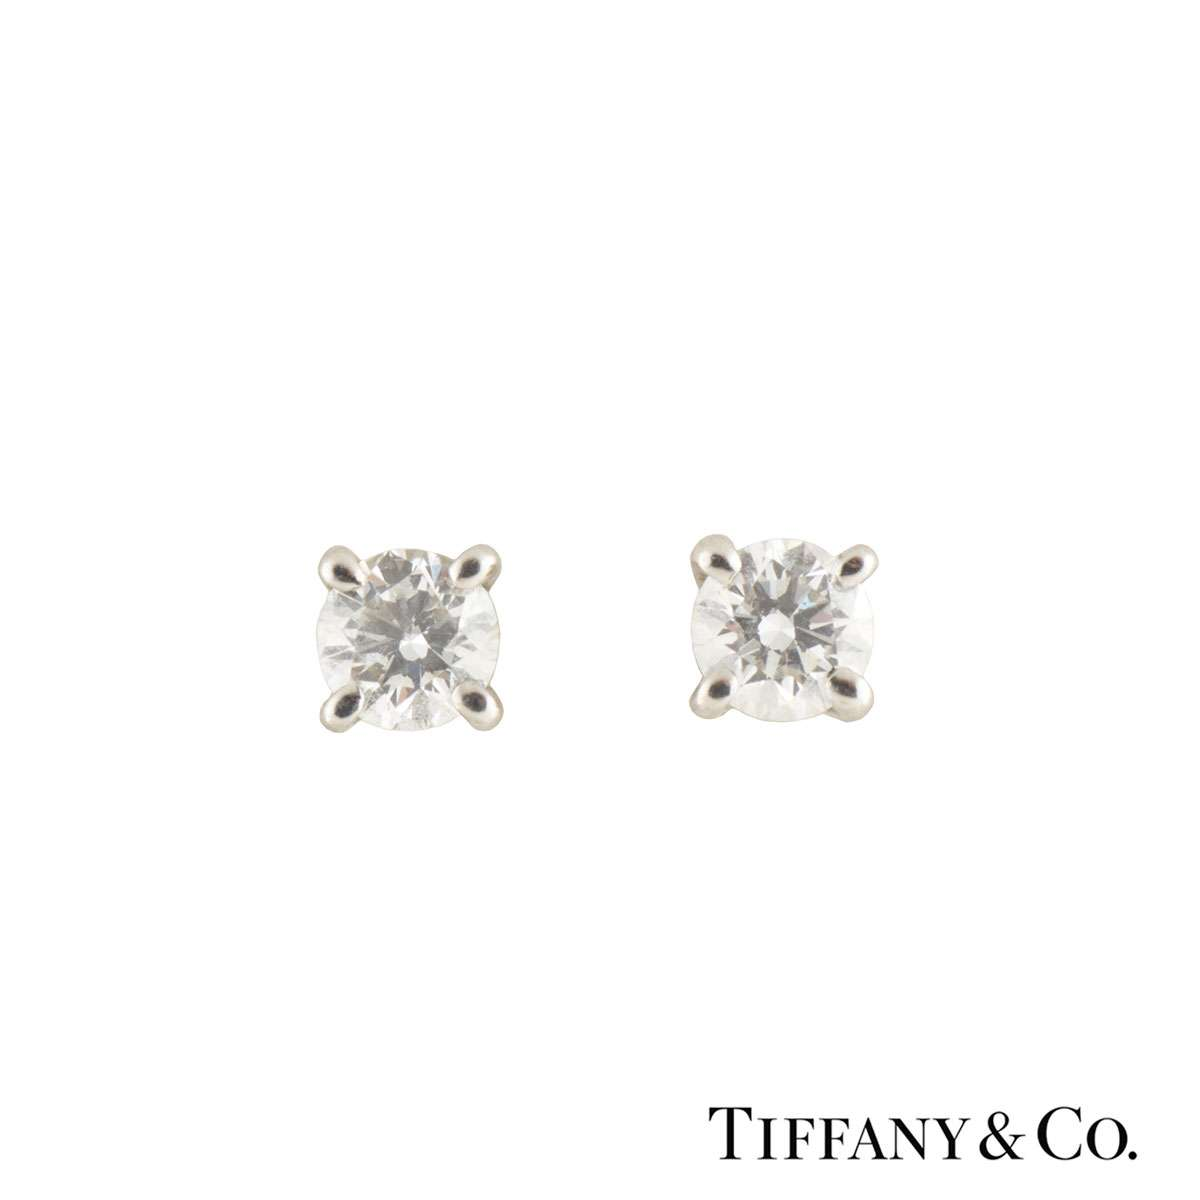 Tiffany & Co. Solitaire Diamond Earrings 0.34ct G/VS